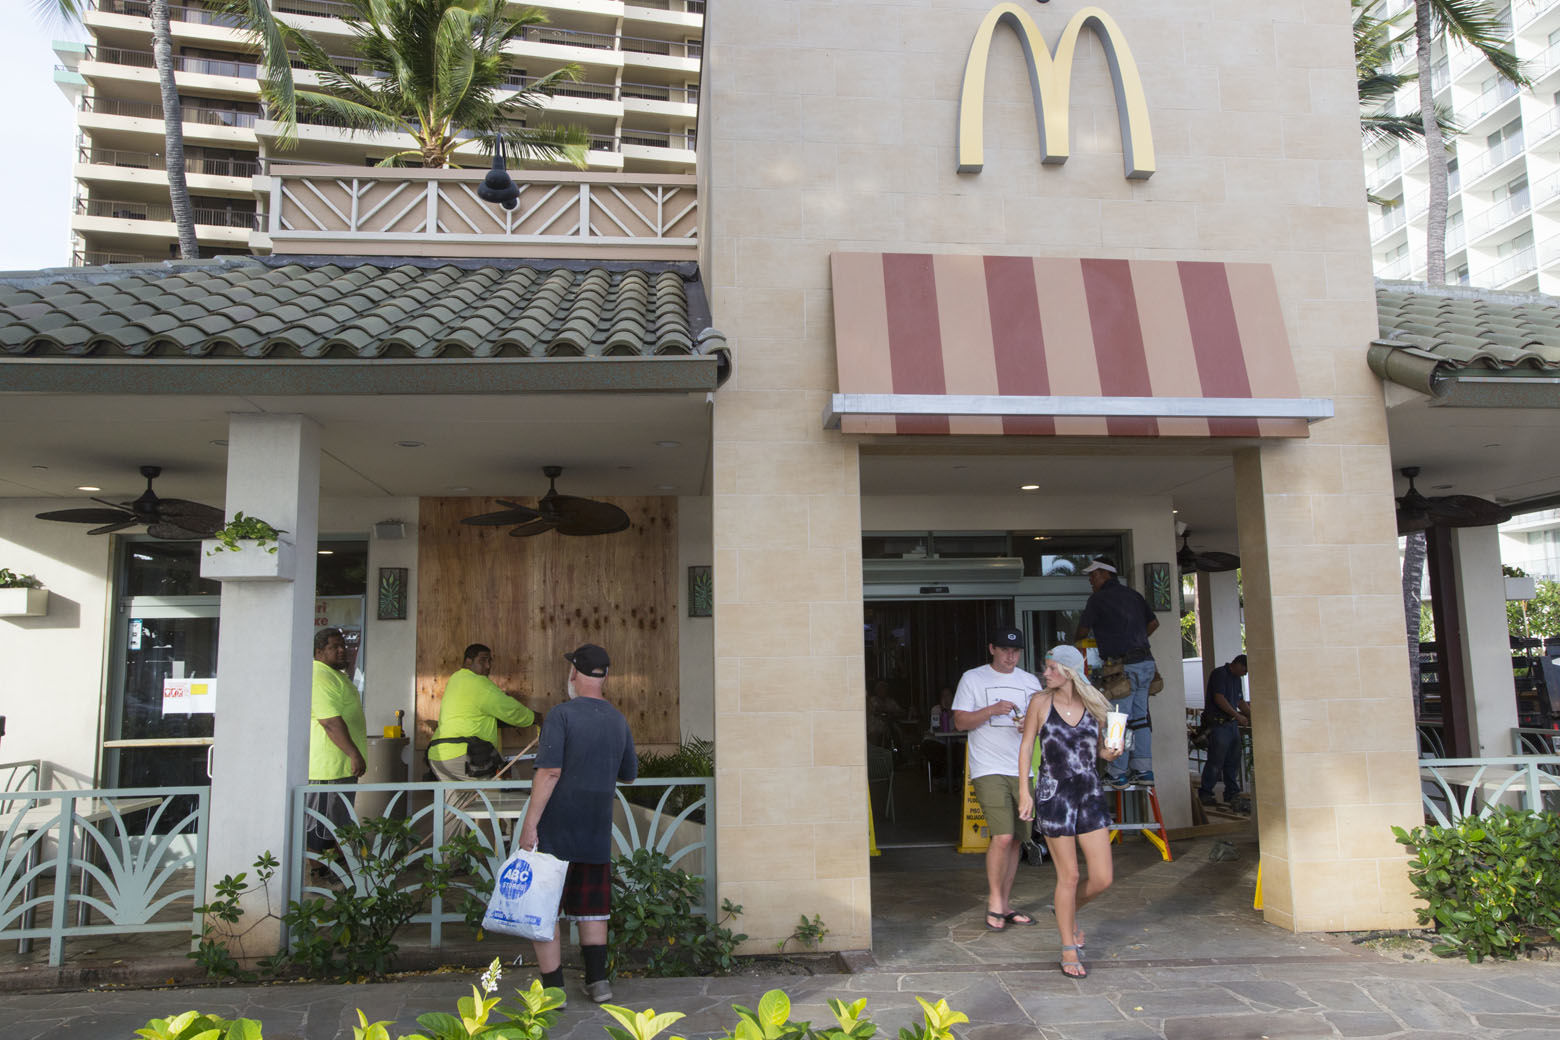 HONOLULU, HI - AUGUST 22:    Yamasaki Construction workers, Talbot Khakai, left, David Halafihi and Manly Williams board up McDonalds front plate glass windows in preparation for Hurricane Lane  while tourists Jordan and Amberly watch them work on Kalaukaua Ave on Wednesday, August 22, 2018 in Honolulu, Hawaii. Hurricane Lane is a high-end Category 4 hurricane and remains a threat to the entire island chain. (Photo by Kat Wade/Getty Images)